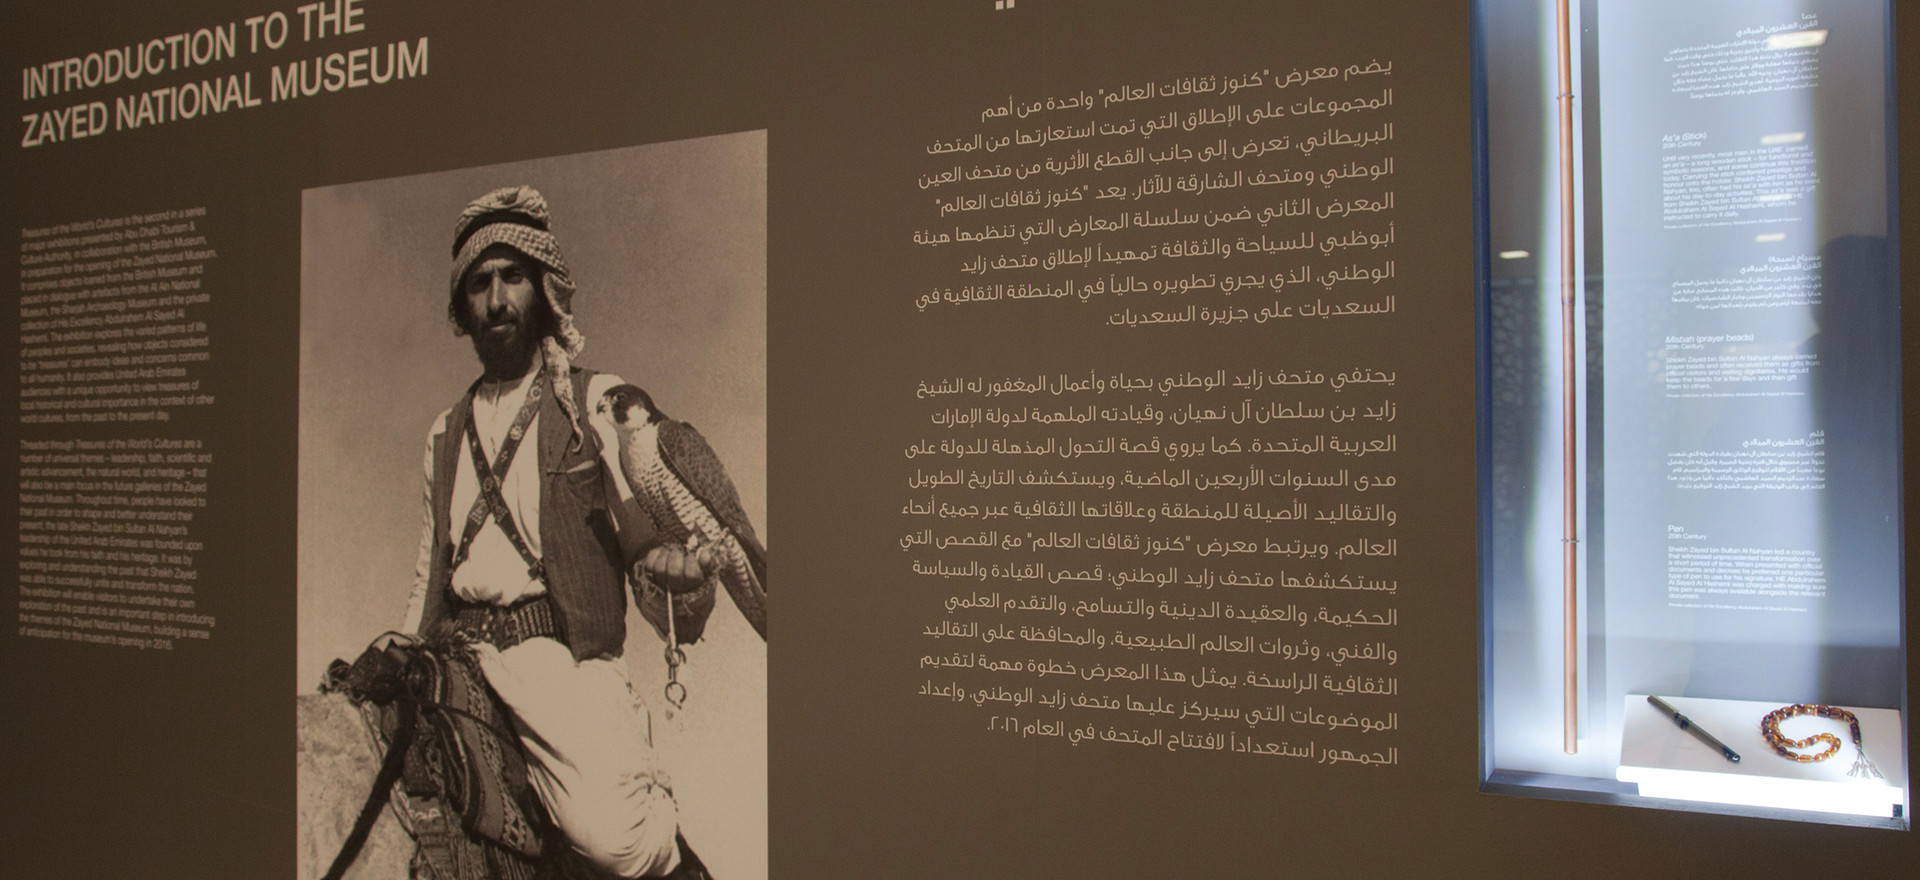 TREASURES OF THE WORLD'S CULTURES EXHIBITION GALLERY